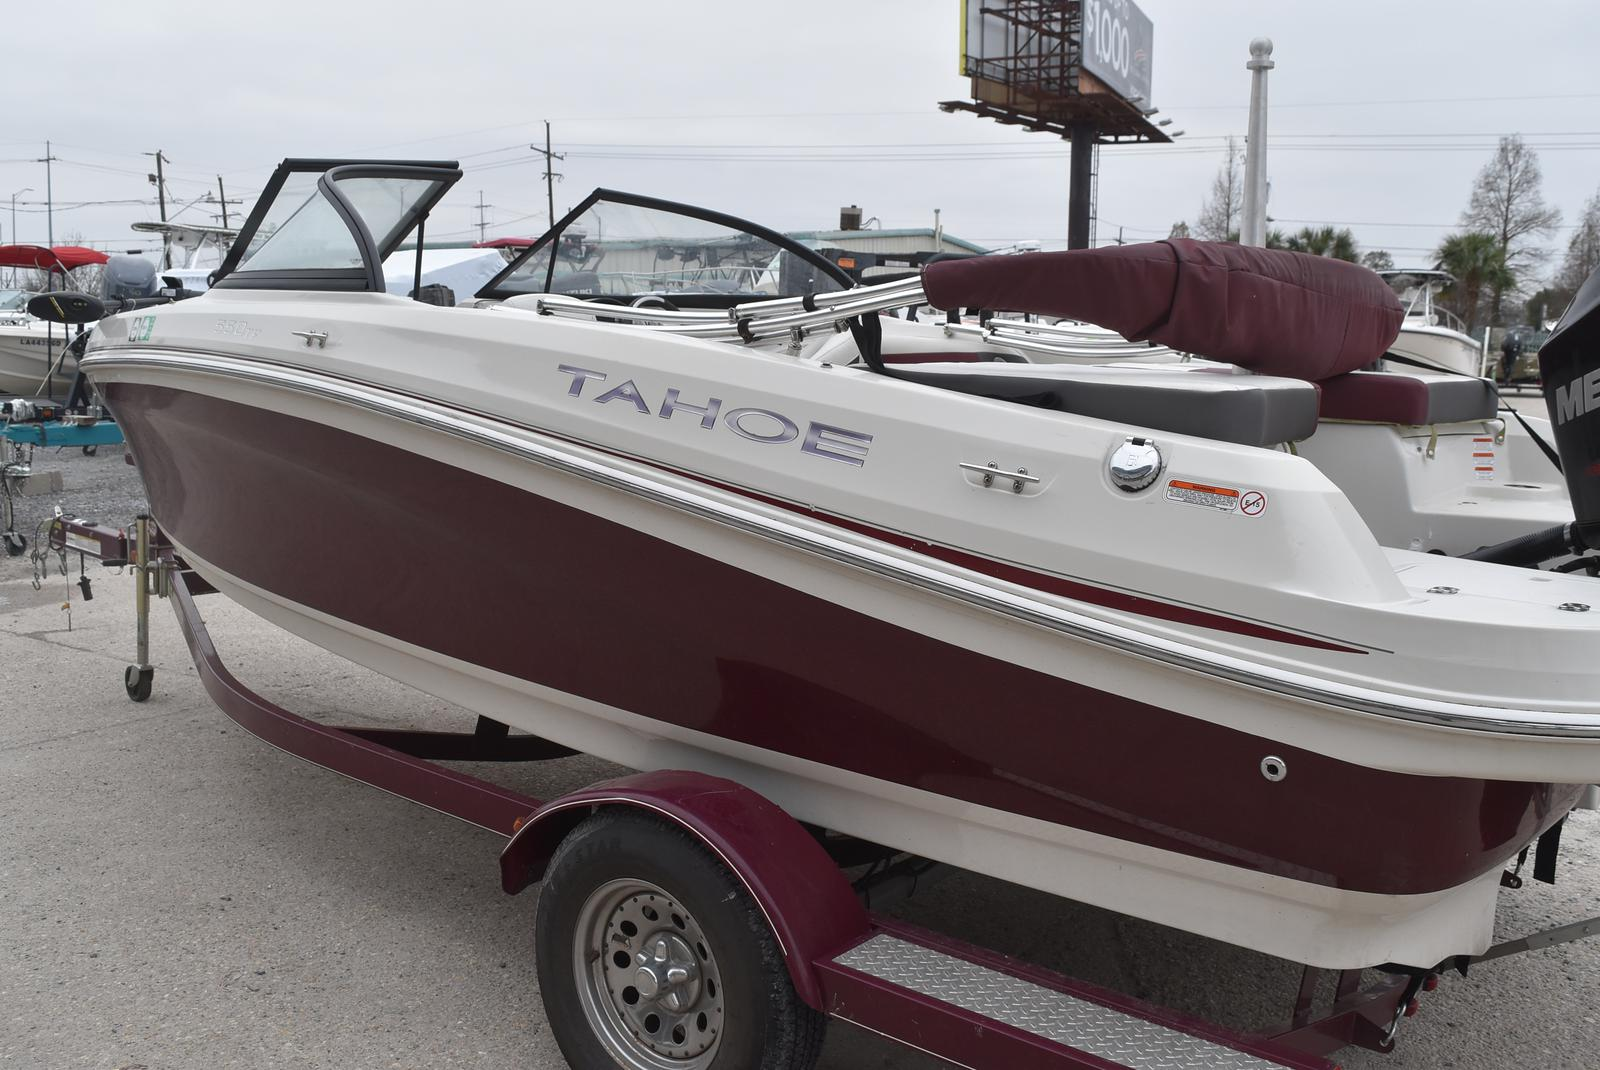 New  2016 Tahoe Bow Rider Bow Rider in Marrero, Louisiana